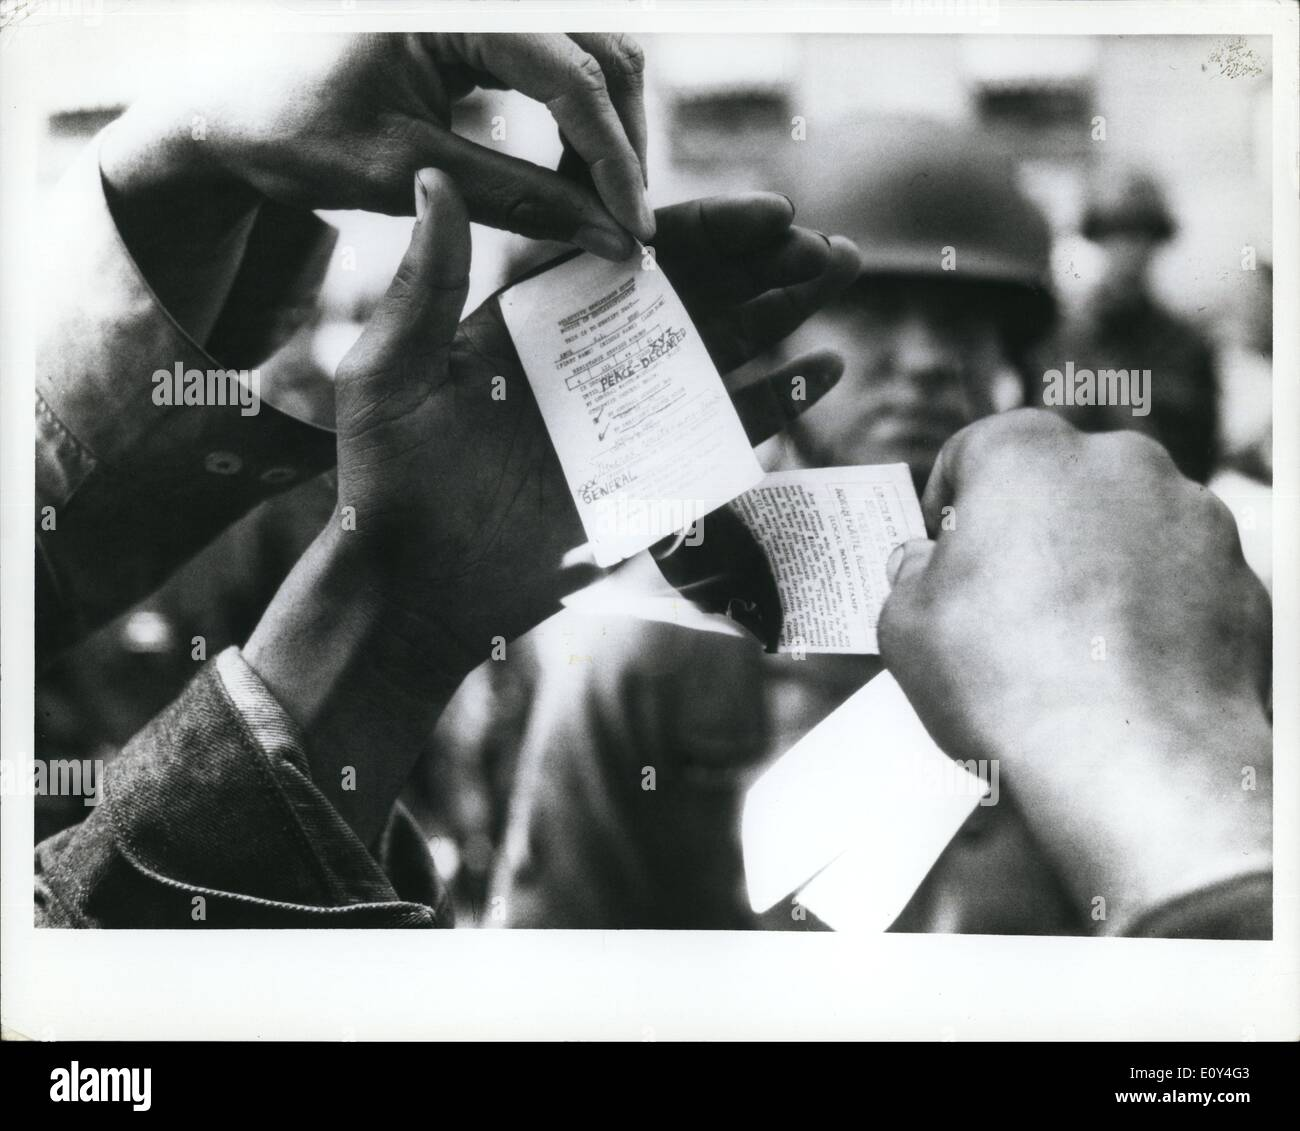 Aug. 08, 1968 - Chicago Democratic Party Convention Demonstrations Draft card burning. - Stock Image